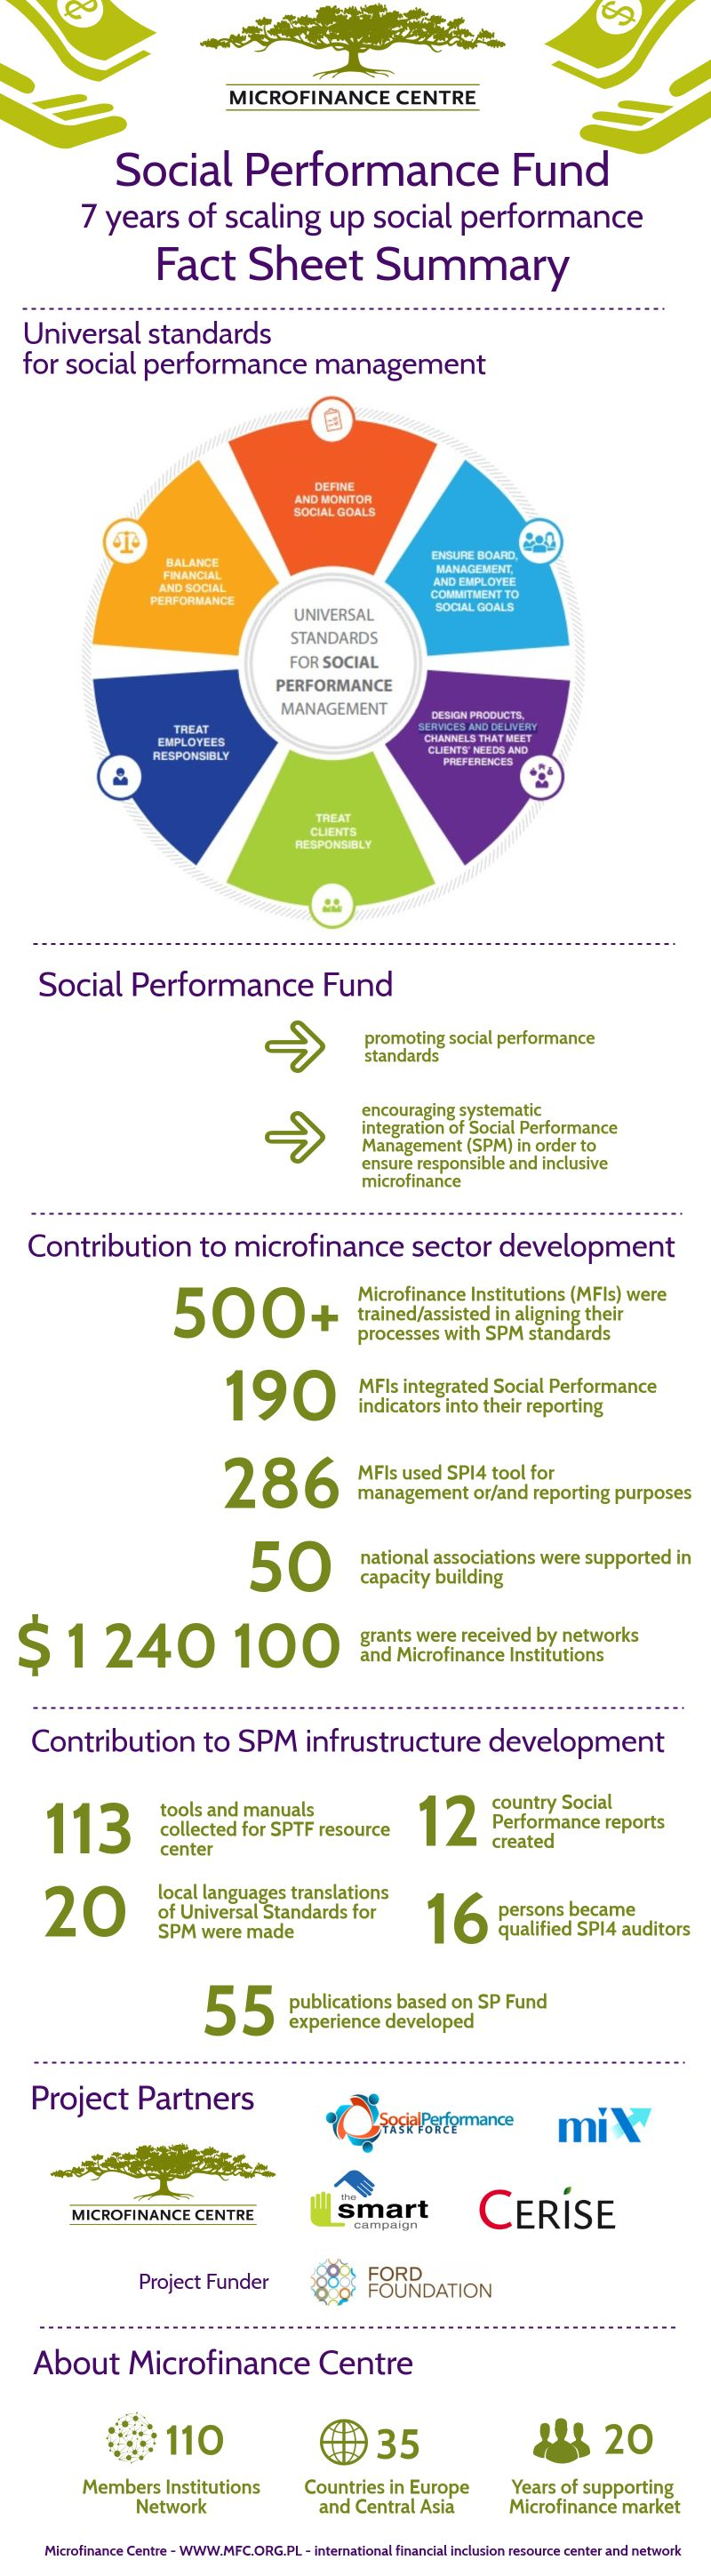 Social Performance Fund infographic summary